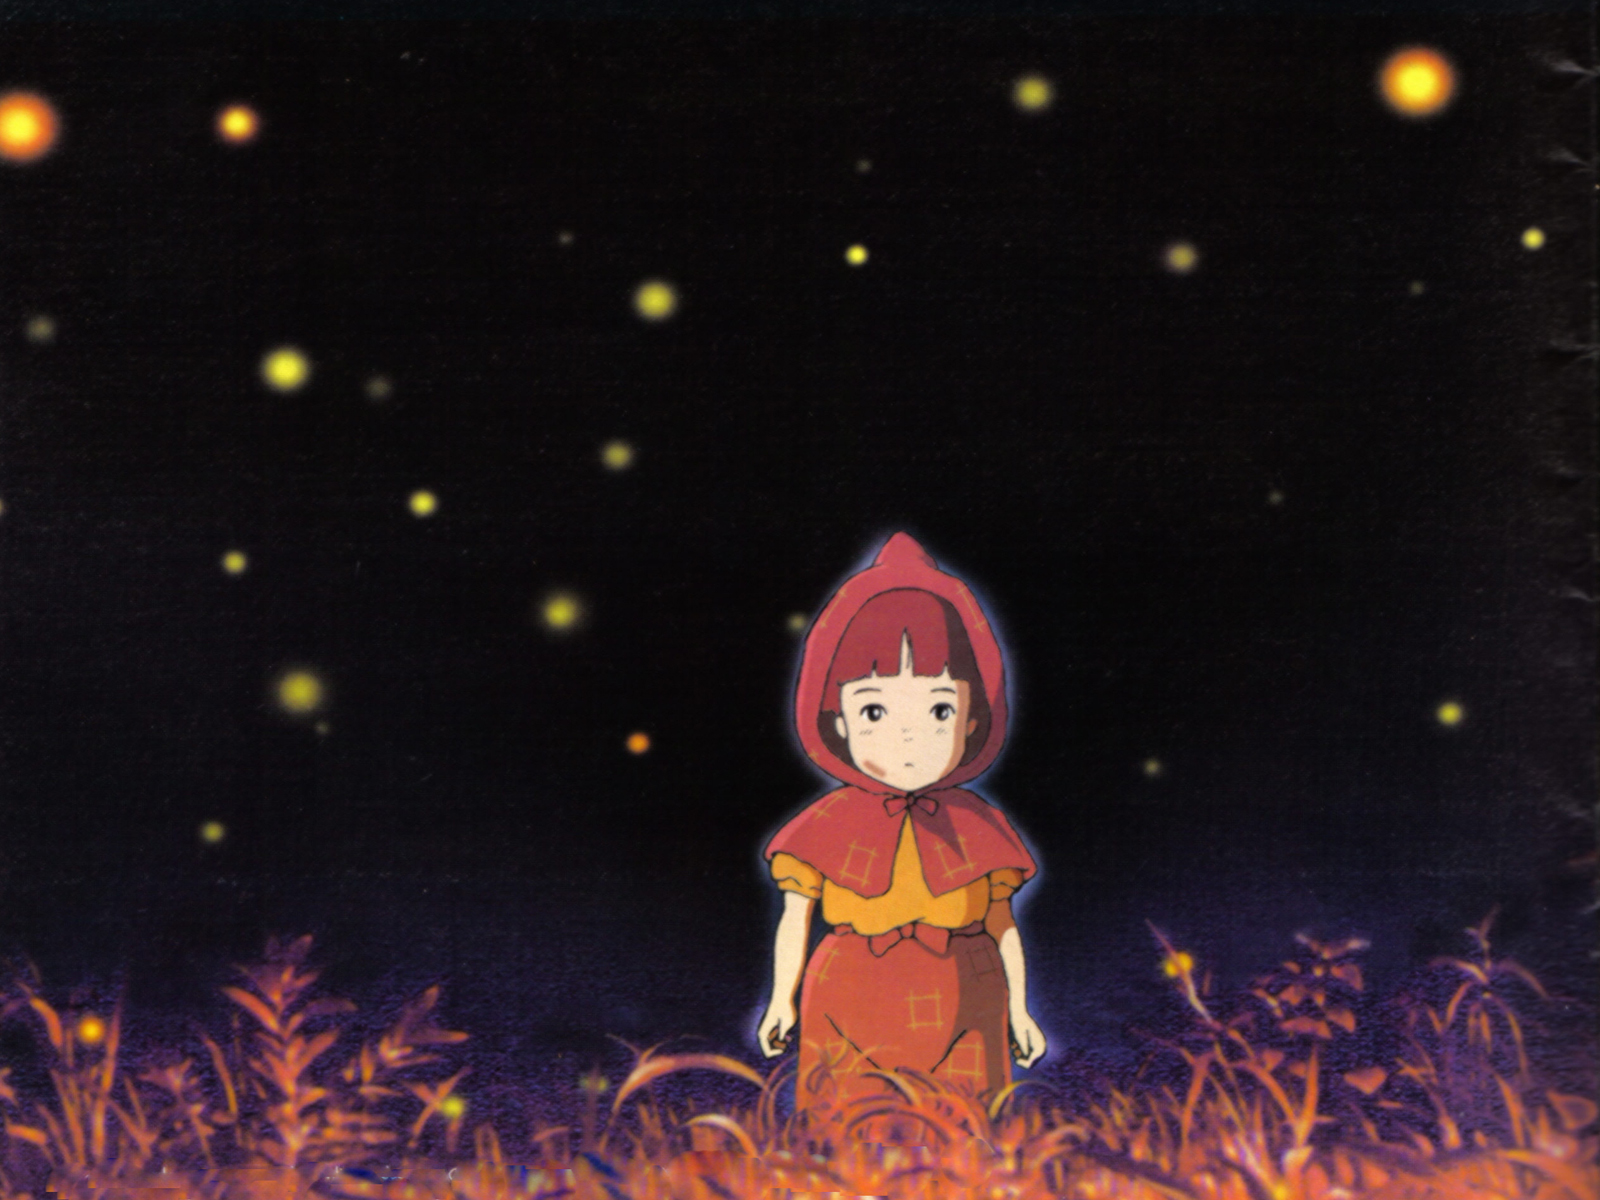 Fireflies Backgrounds Posted By Zoey Sellers